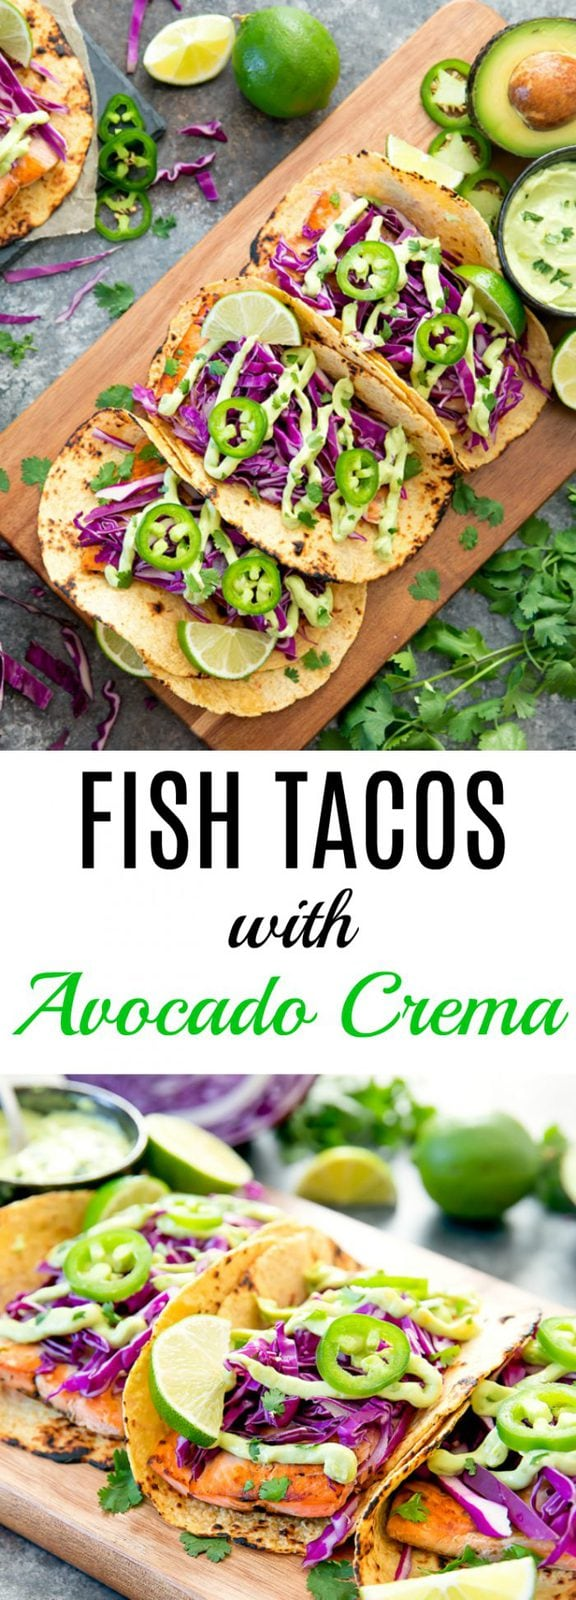 Salmon Fish Tacos with Avocado Crema Sauce